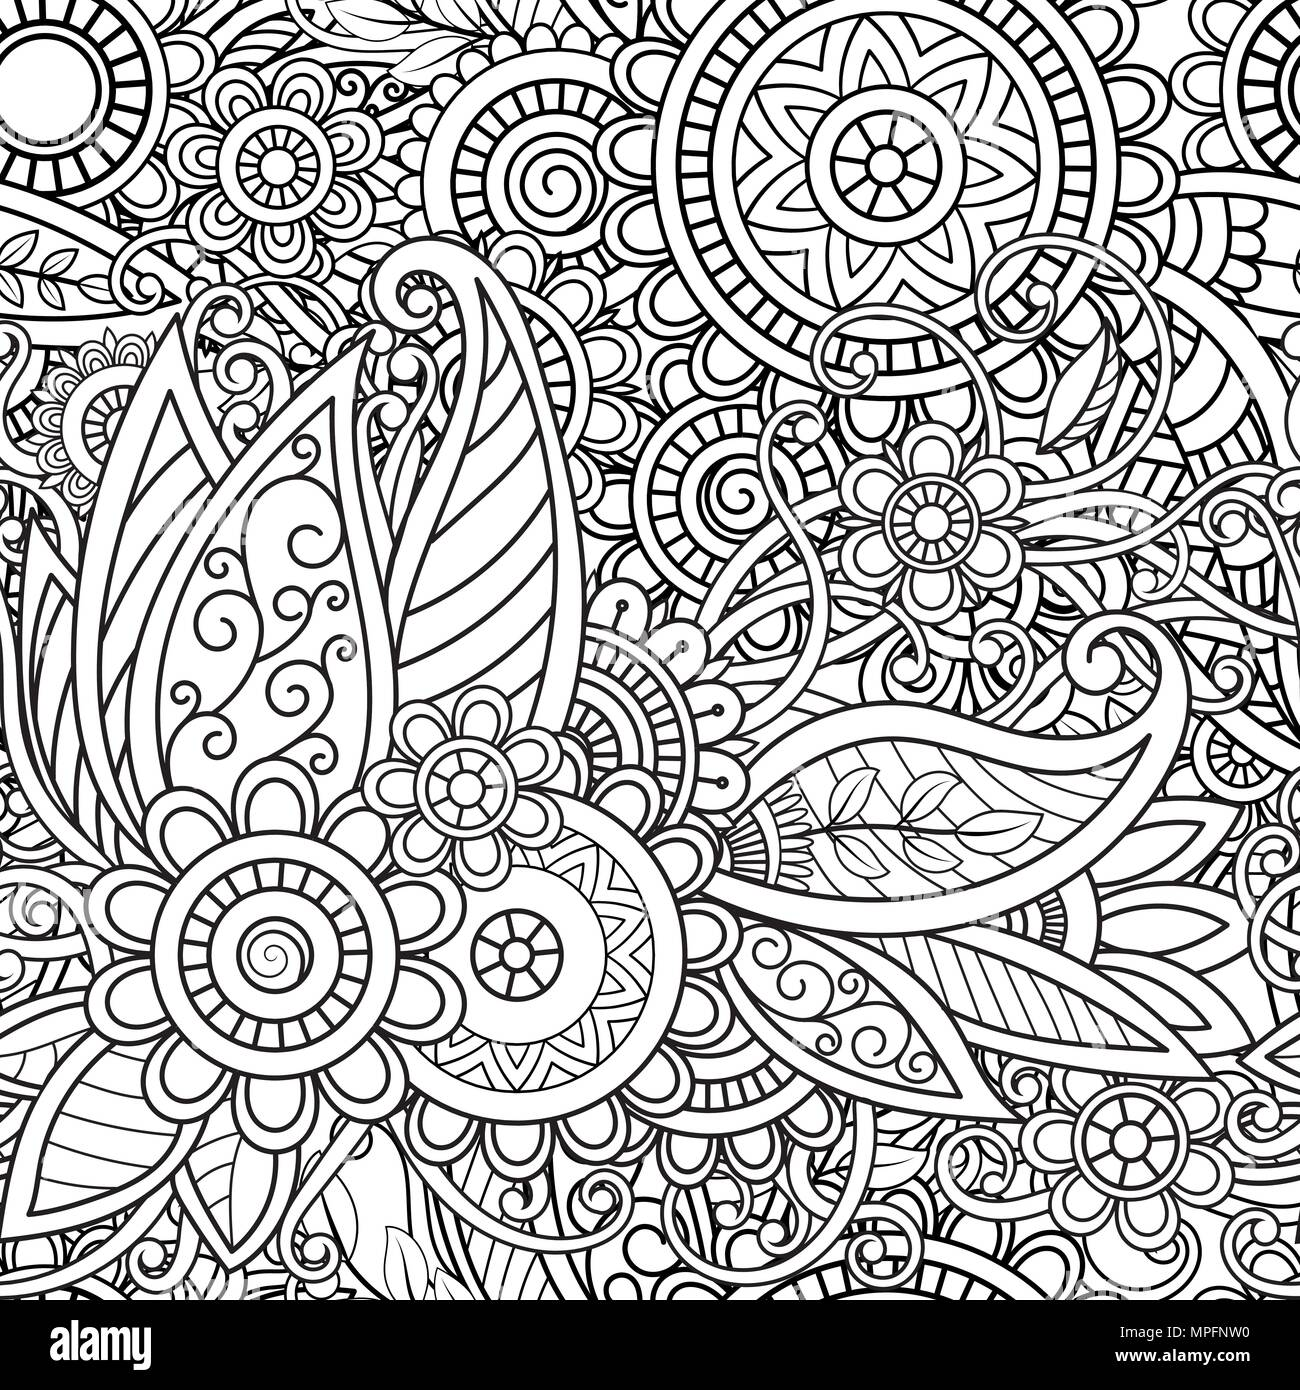 Ethnic Seamless Pattern With Mandalas Flowers And Leaves Doodles